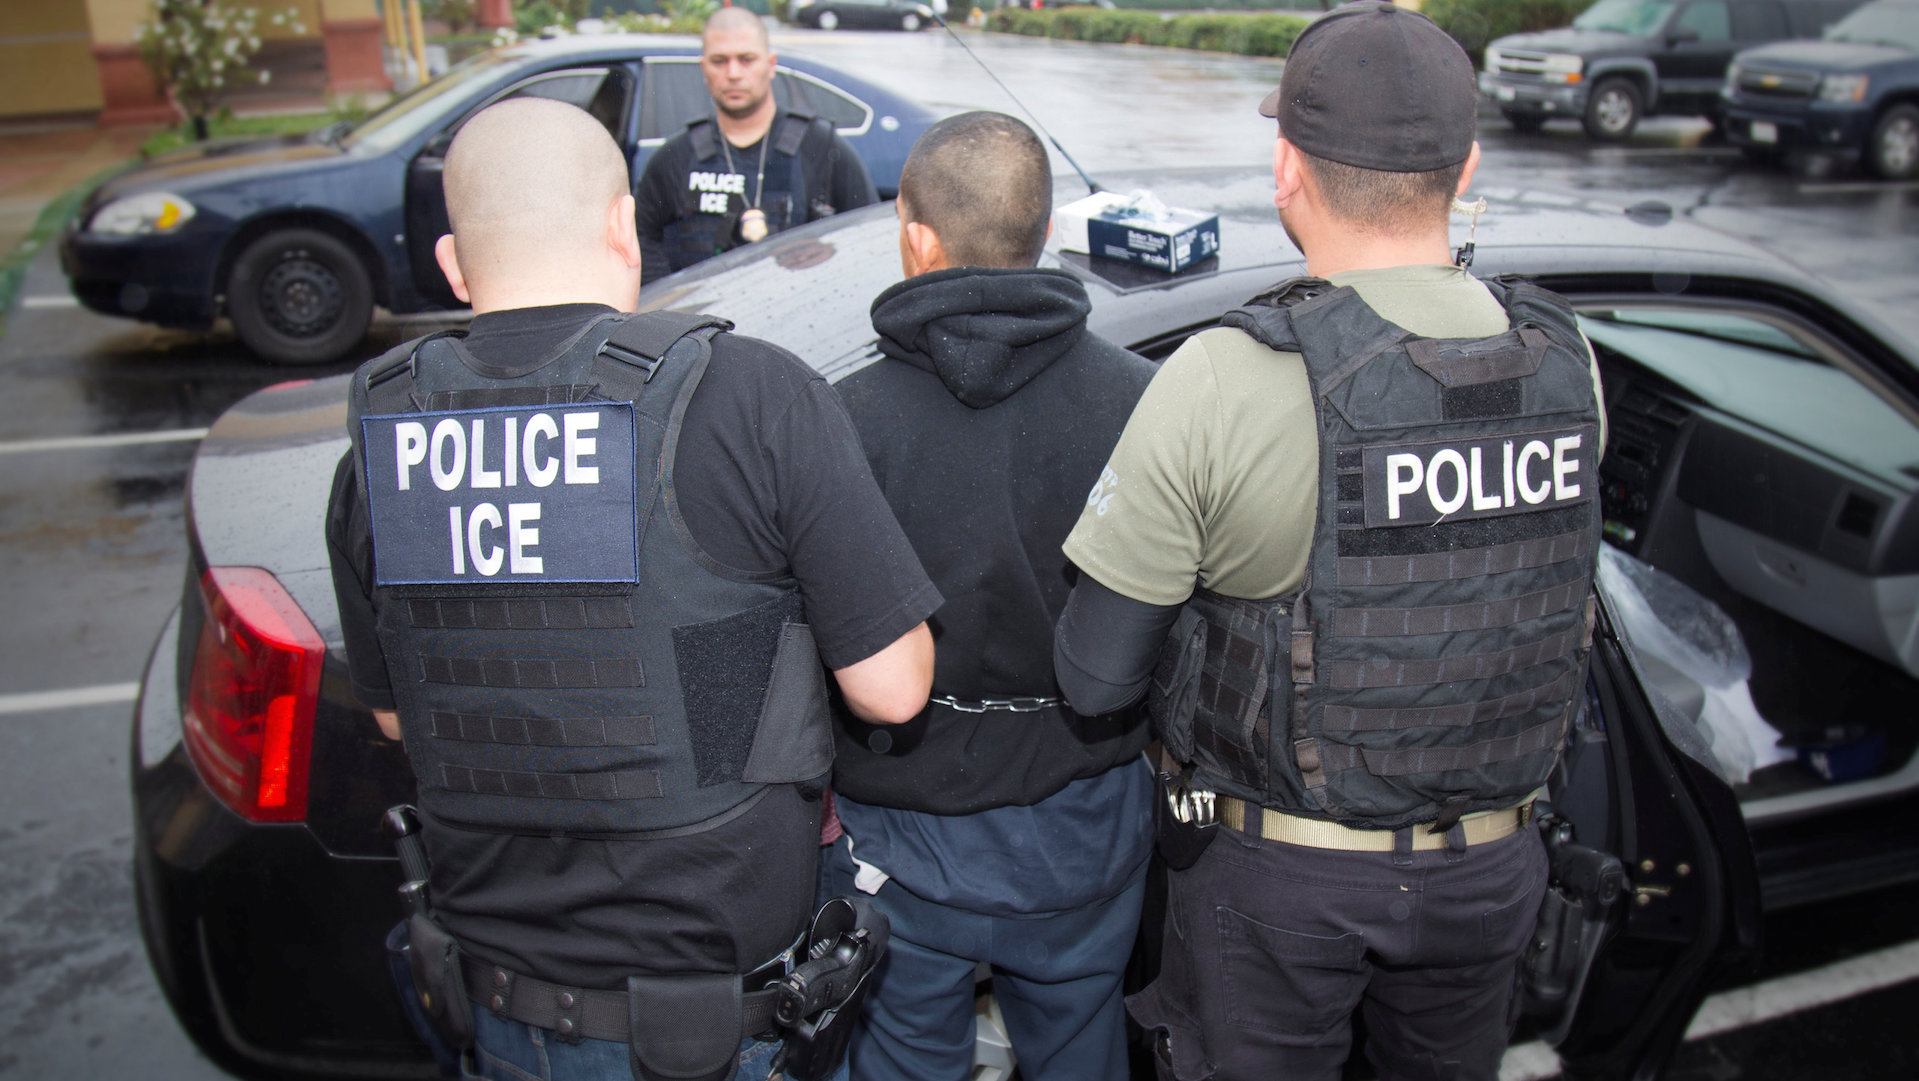 They met with immigration officers to apply for legal residency — only to be arrested by ICE